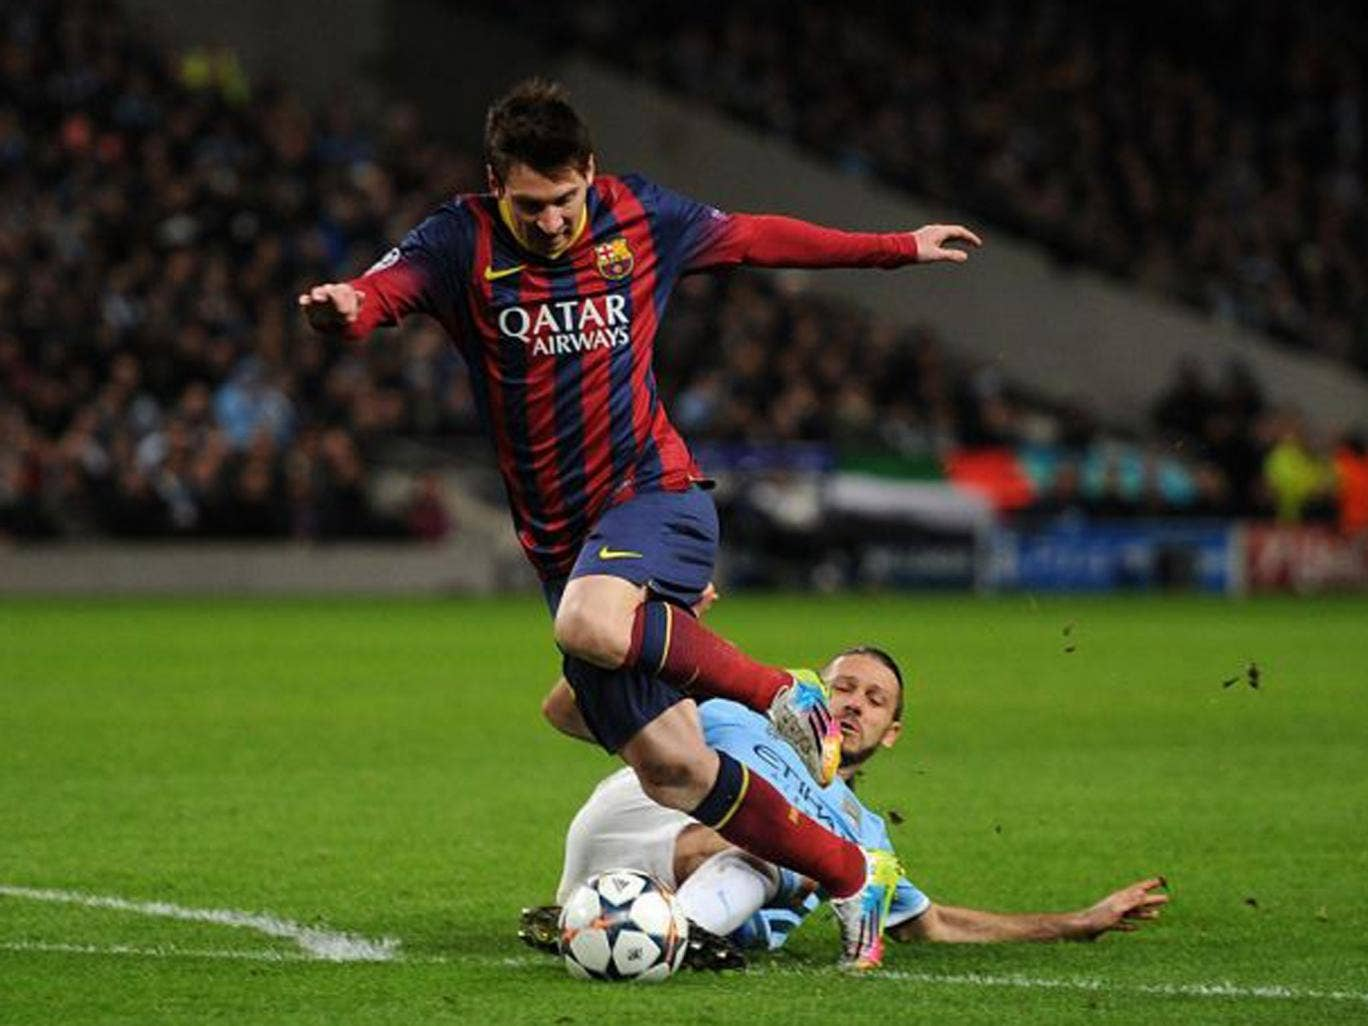 Manchester City's Martin Demichelis brings down Barcelona's Lionel Messi to concede a penalty and receives a red card